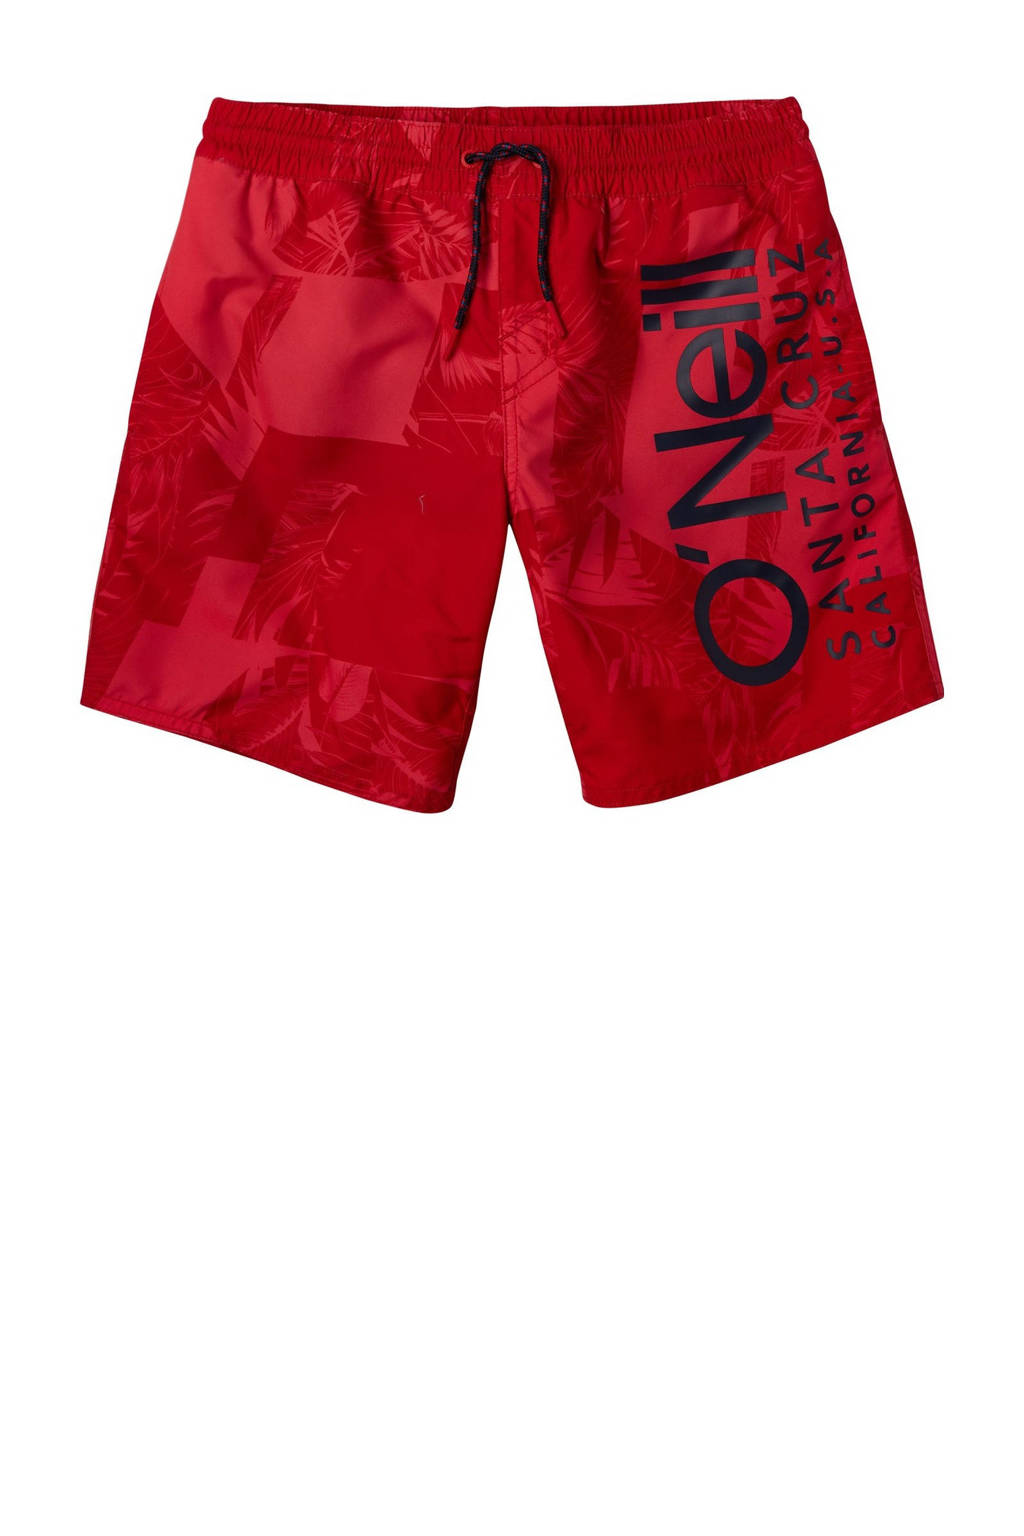 O'Neill Blue zwemshort Cali met all over print rood, Rood